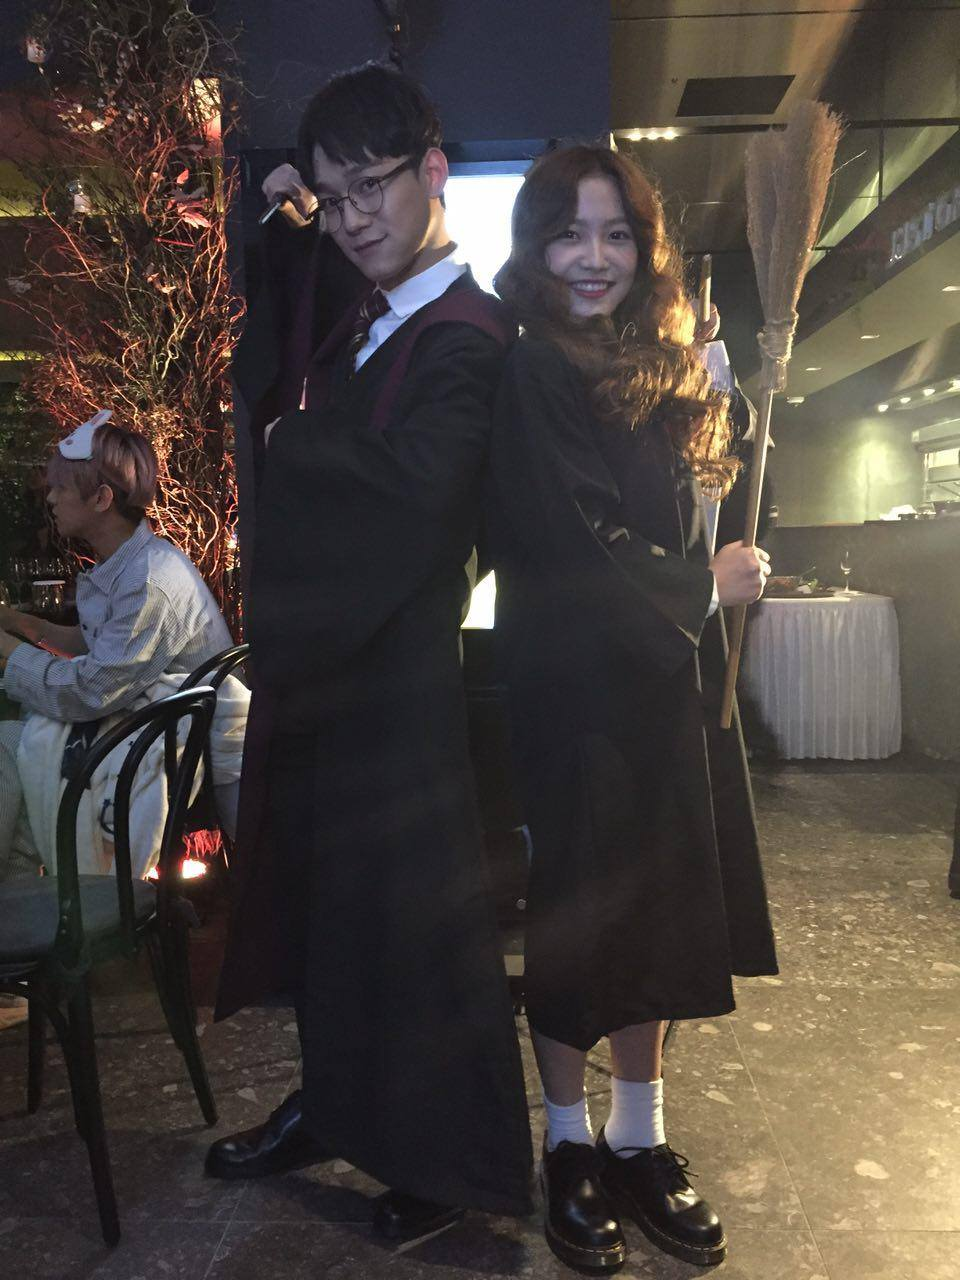 EXO's Chen and Red Velvet's Yeri in Harry Potter cosplay at the SMTOWN Halloween Party. / Source: SMTOWN Facebook